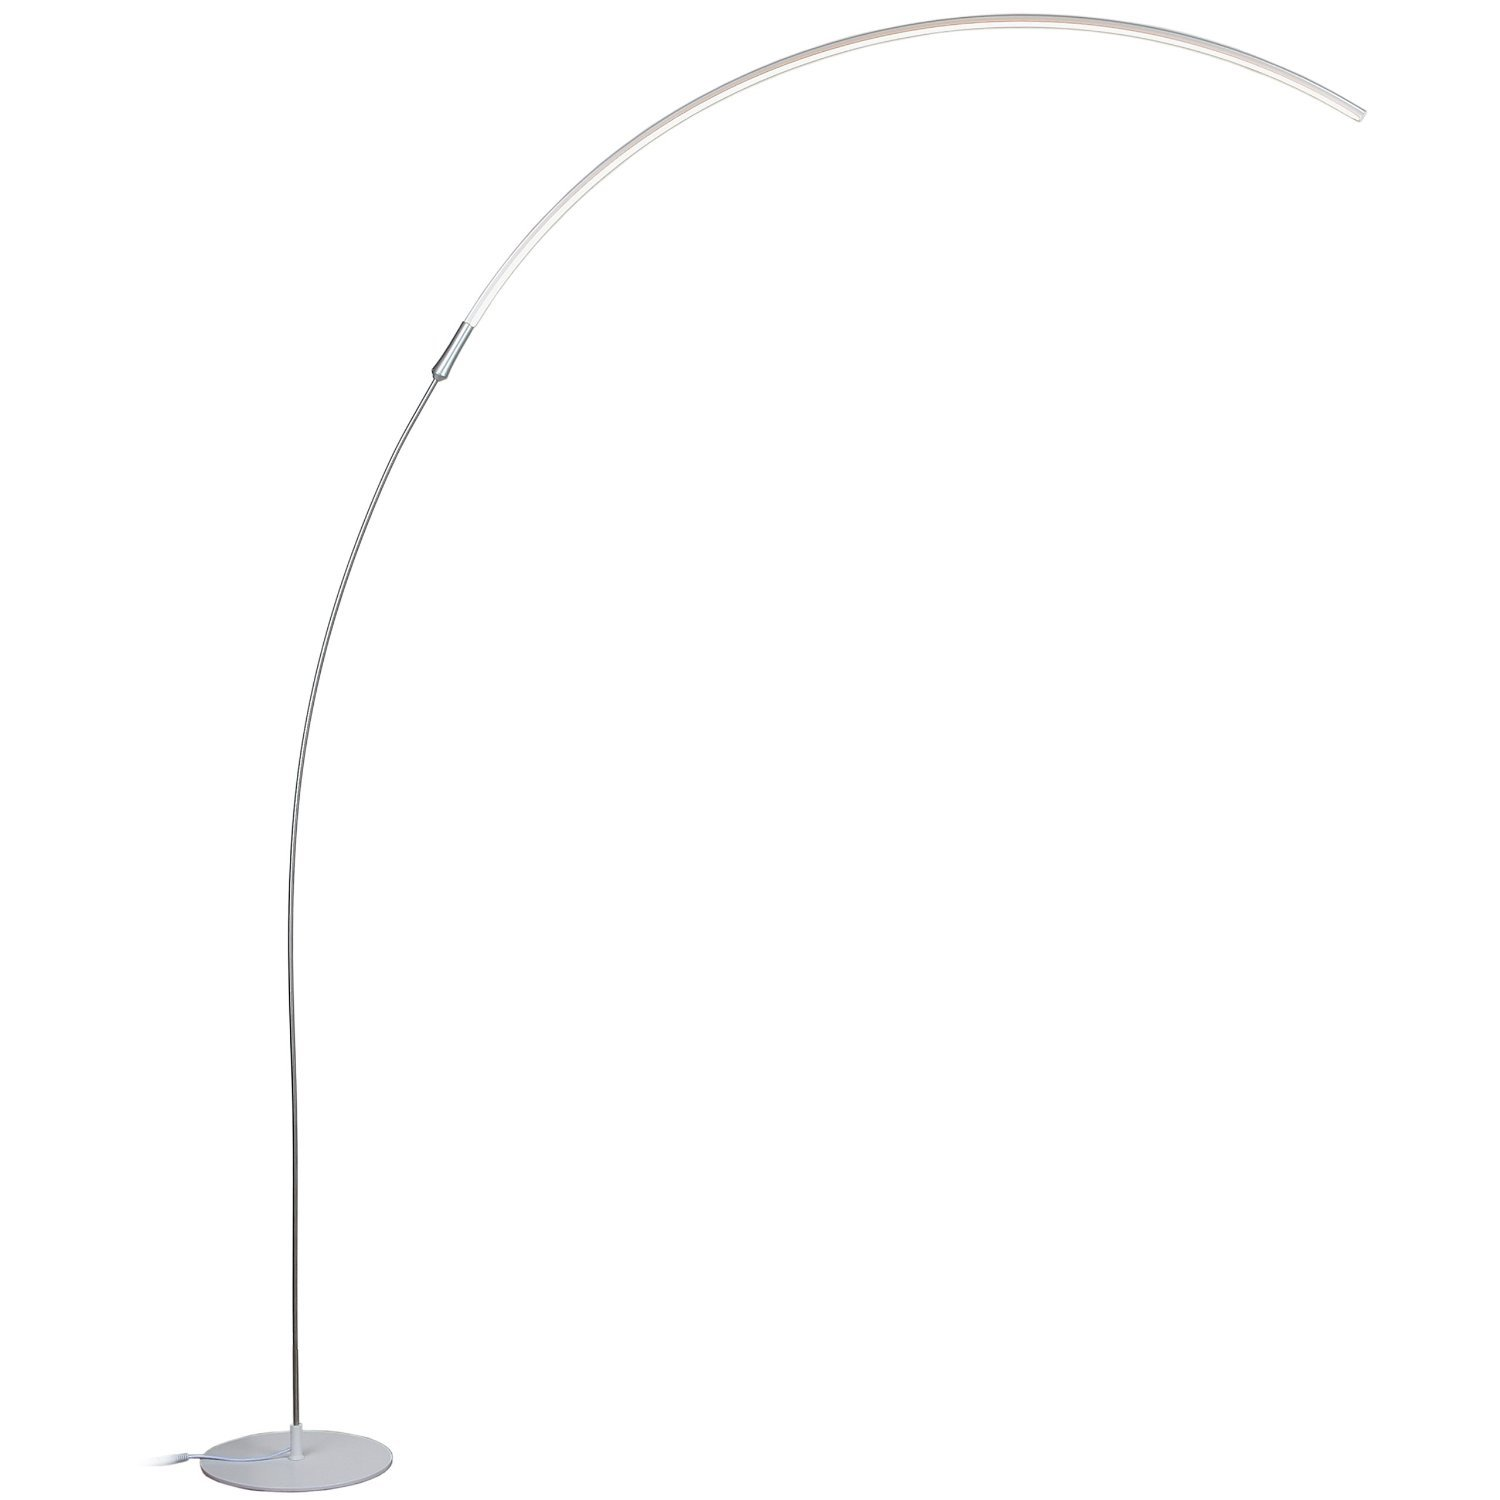 Amazon white floor lamps lamps shades tools - Brightech Sparq Led Arc Floor Lamp Curved Contemporary Minimalist Lighting Design Warm White Light Silver Amazon Com